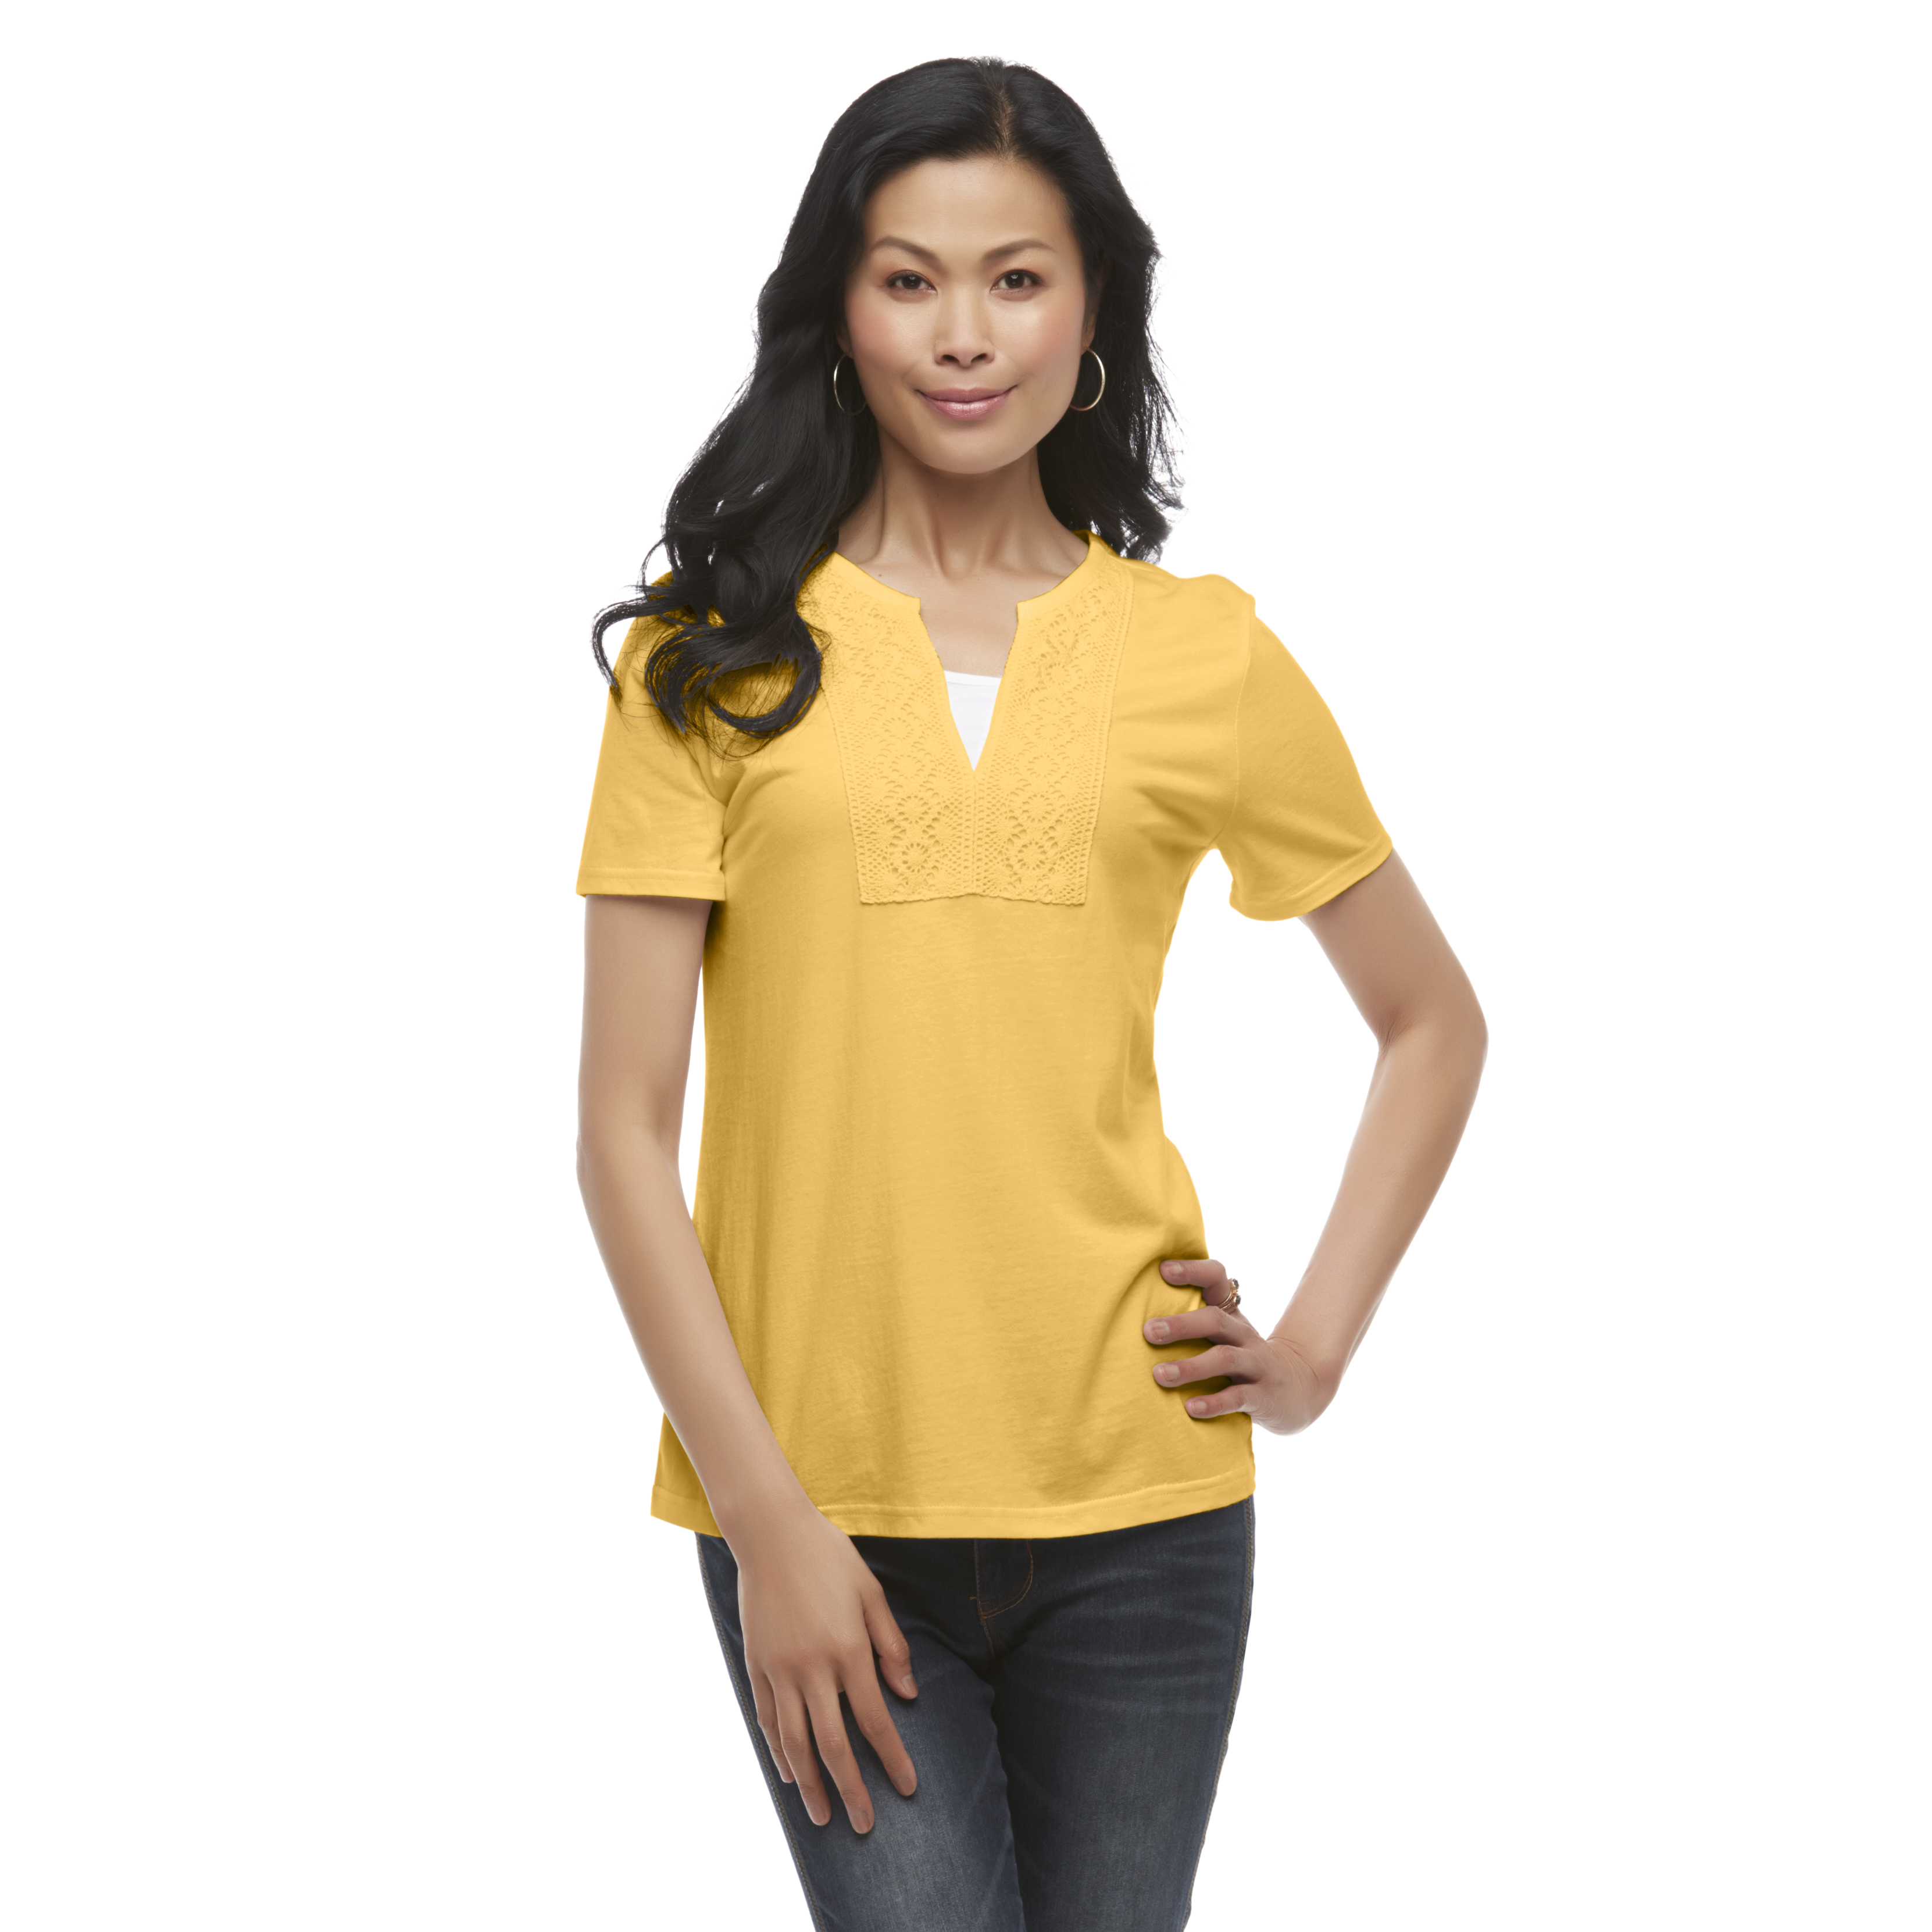 Basic Editions Women's Layered-Look Crocheted V-Neck T-Shirt